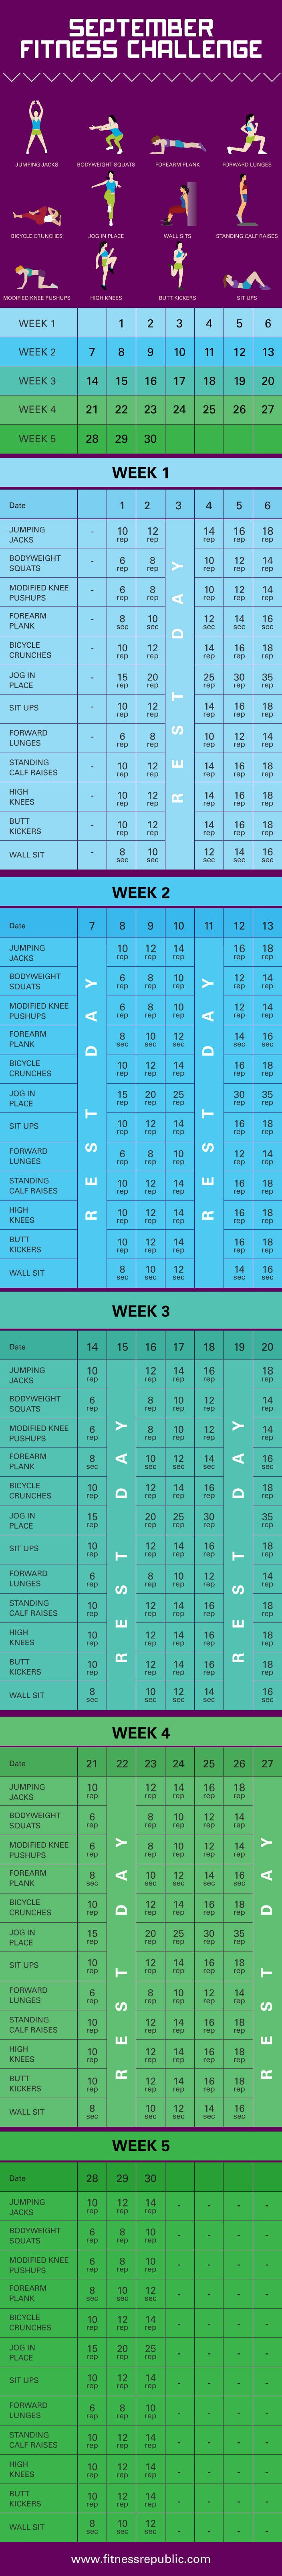 Who's up for a September #Fitness Challenge? Tag a friend & join...30 Days